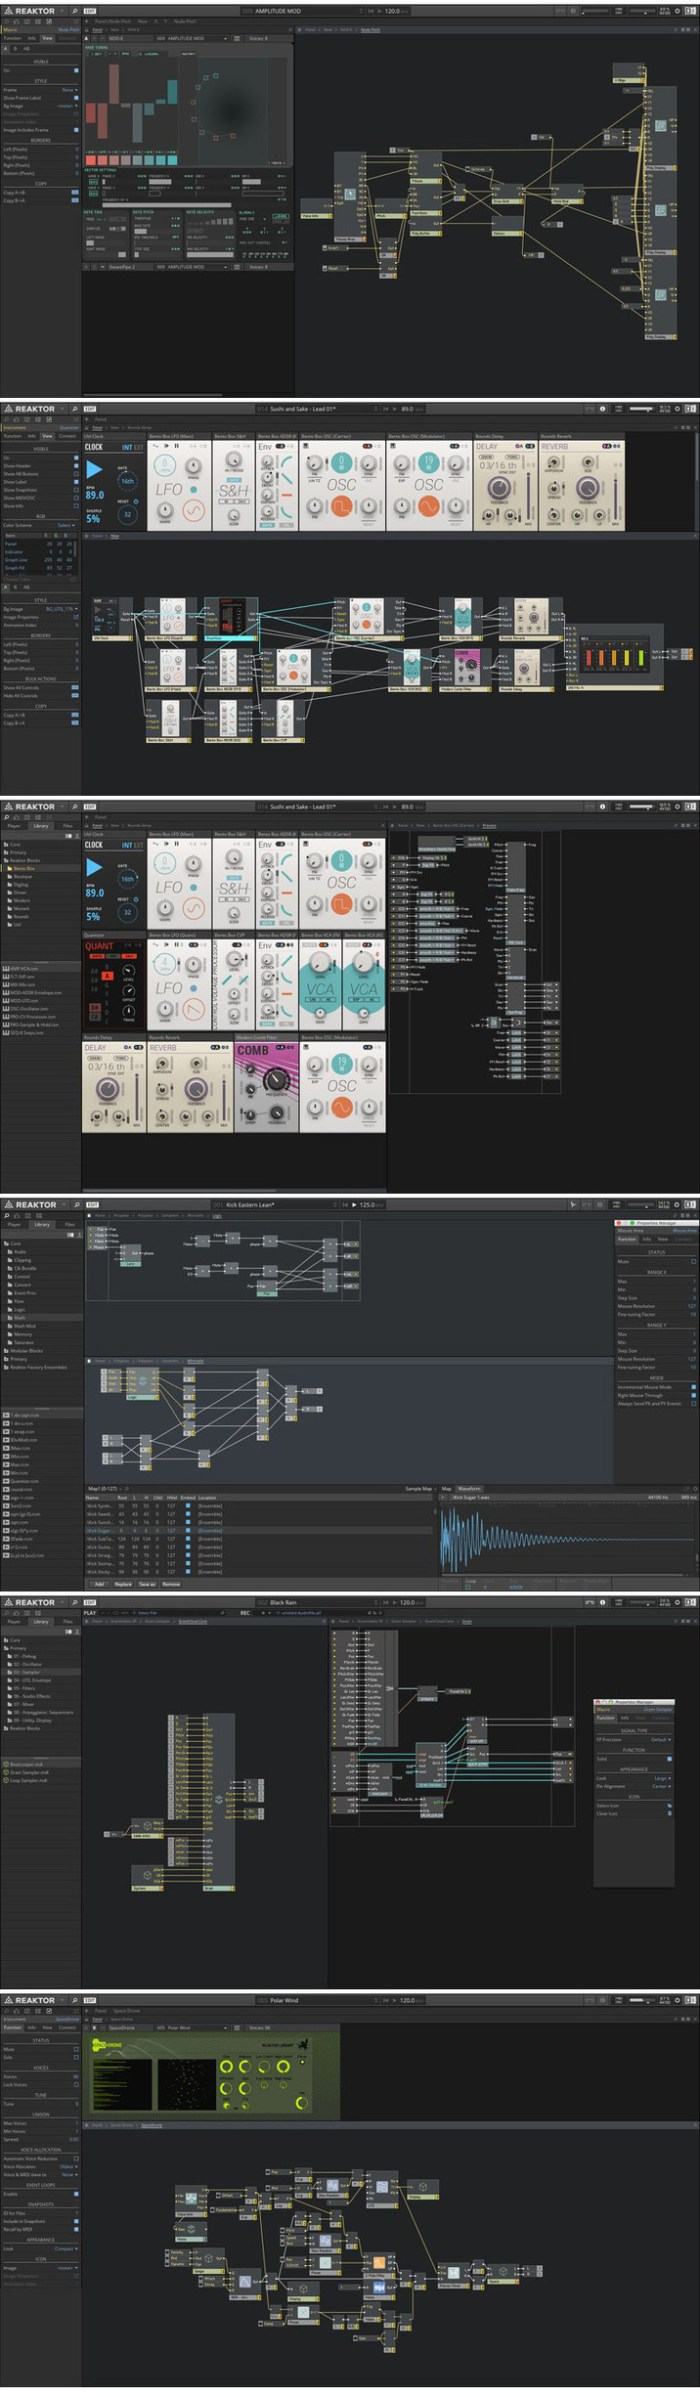 native_instruments_reaktor_601_reupload